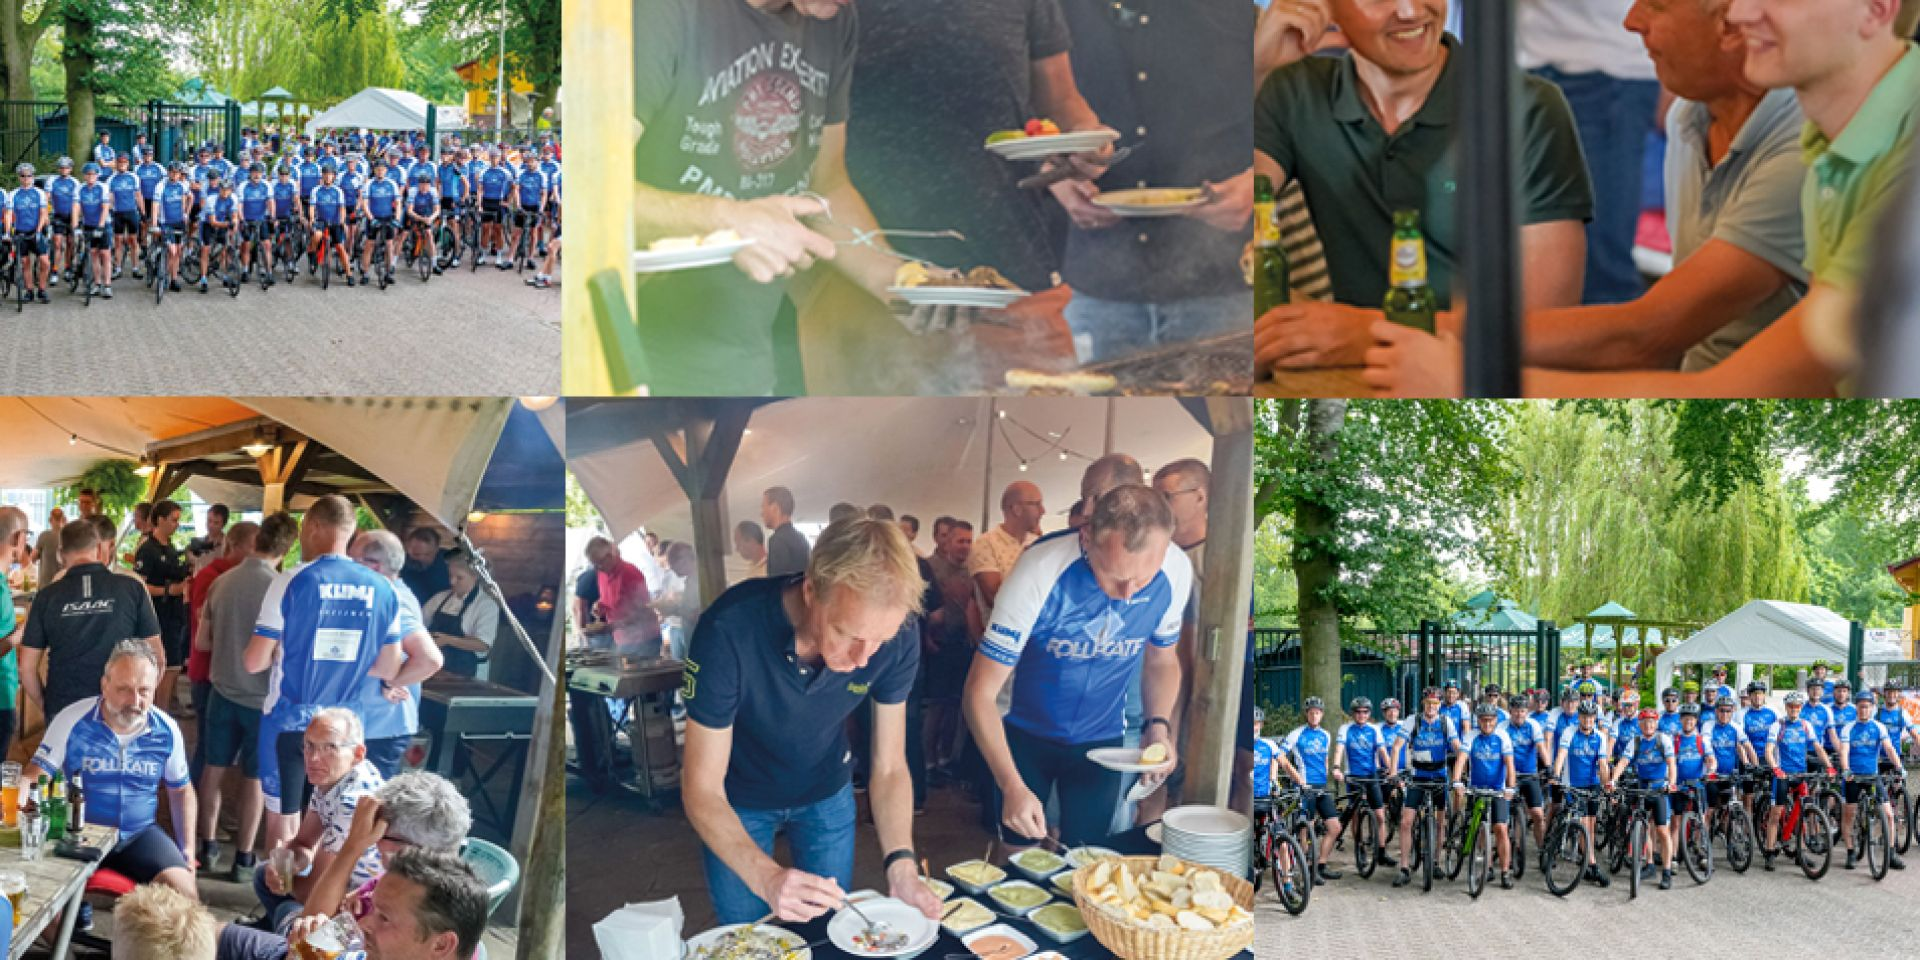 Rollecate Groep Fietsevent 2019